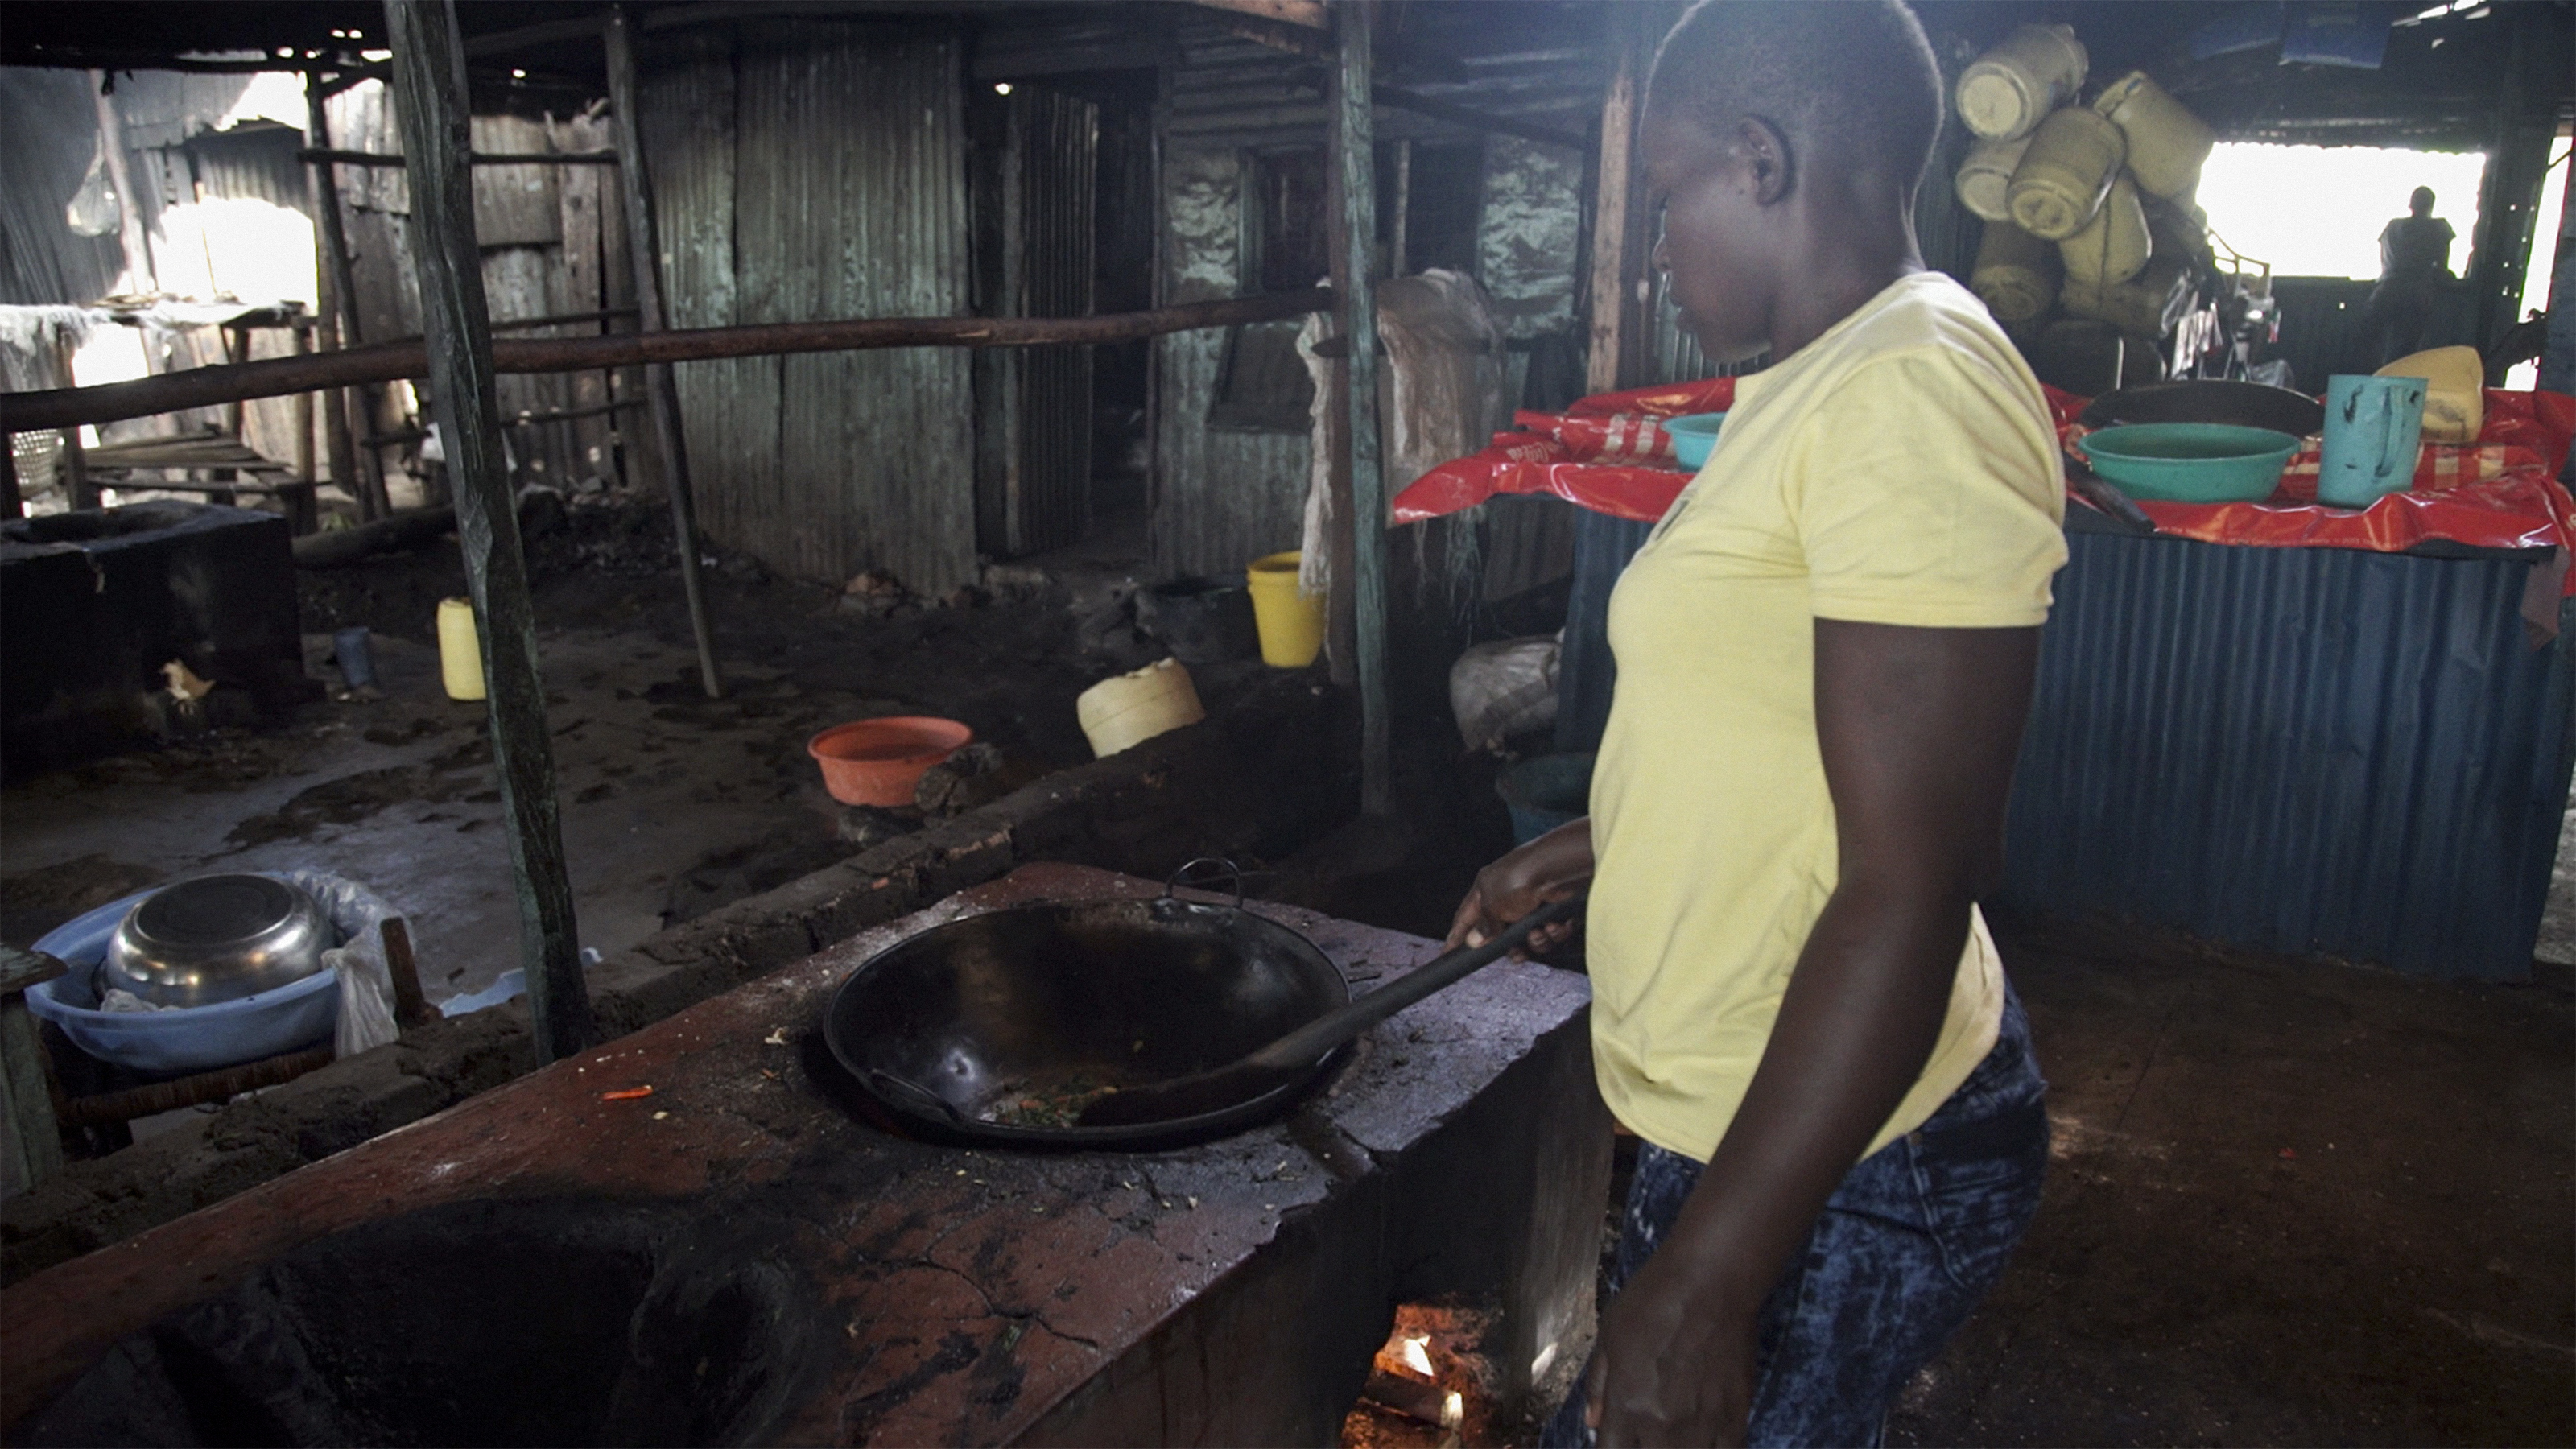 A cook prepares food in her restaurant on a recently installed rocket stove on the shores of Lake Victoria in Kisumu, Kenya. The rocket stoves are cleaner and more effiecient, allowing restaurants to expand and serve more customers. Photo: Petr Kapuscinski / World Bank